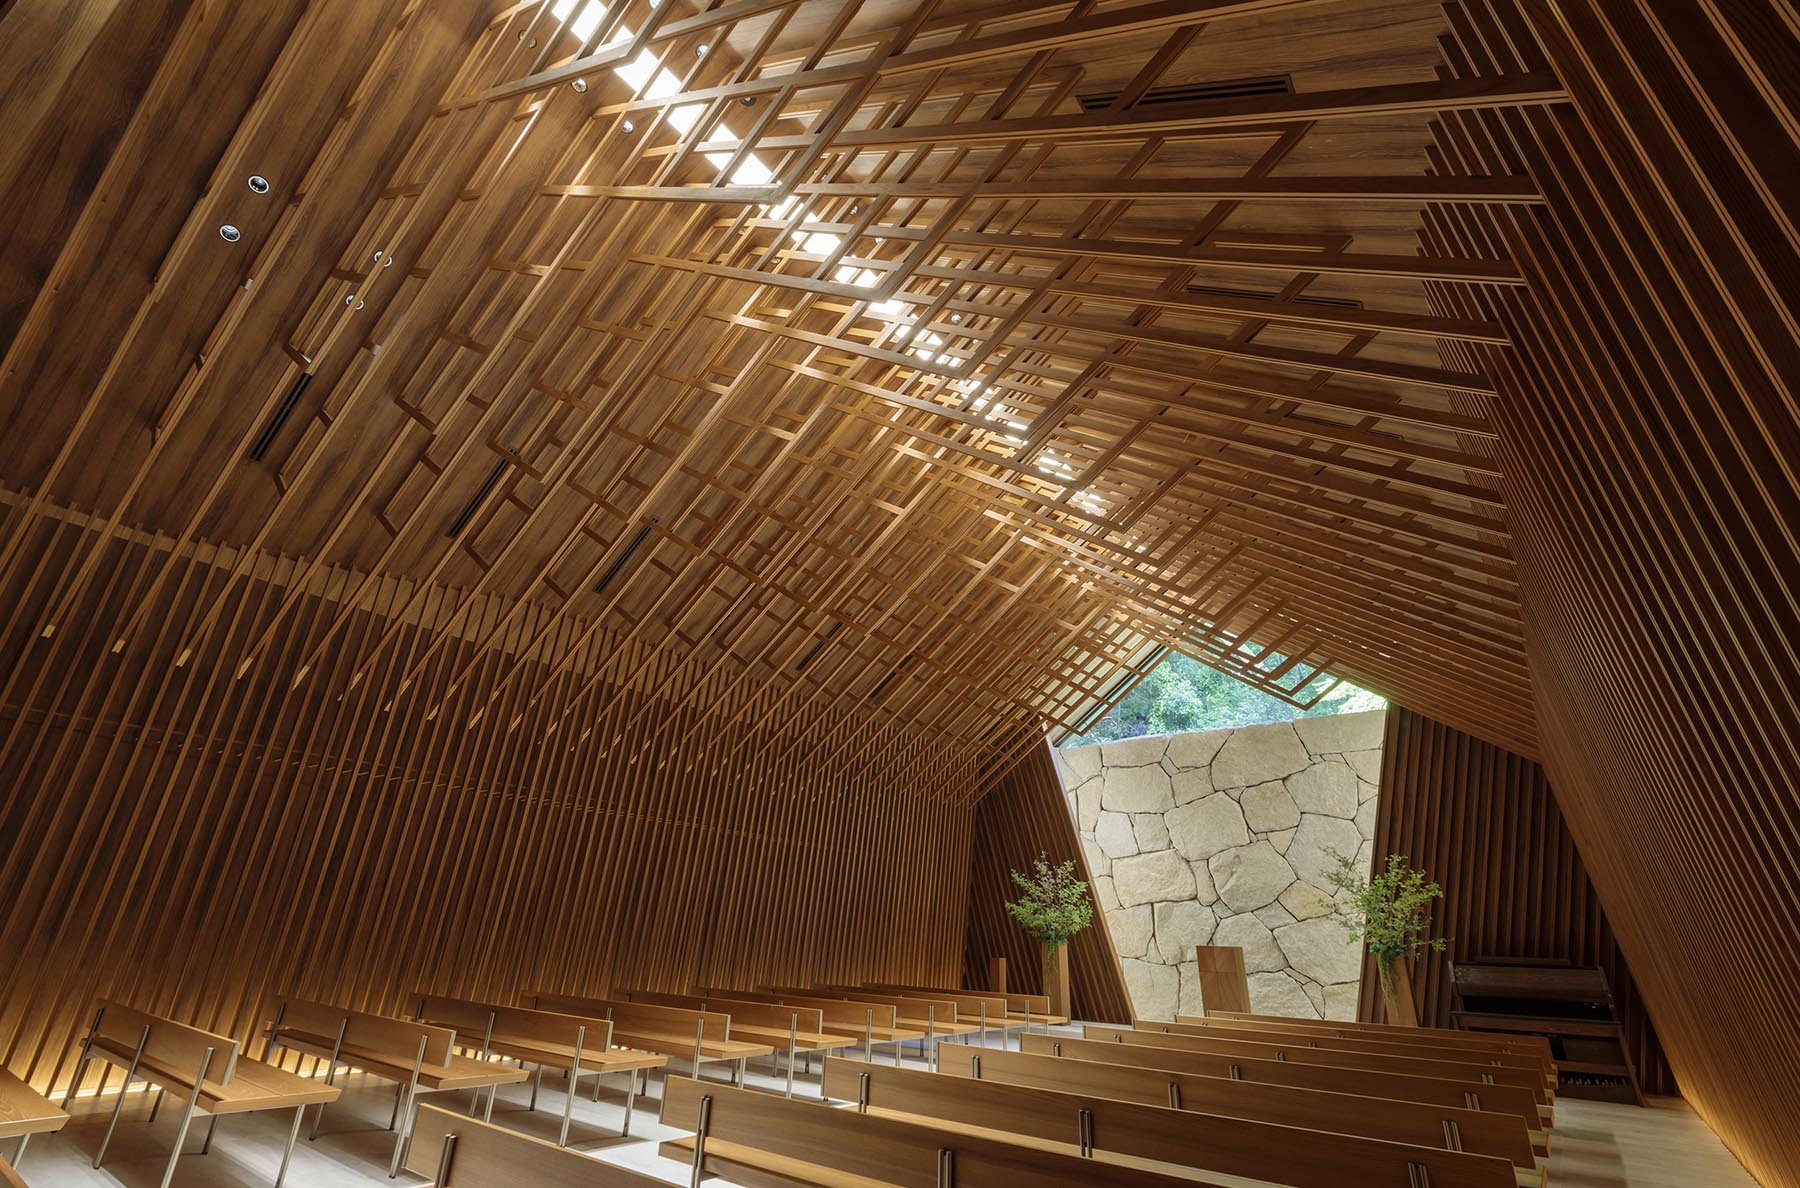 A modern chapel with eye-catching wood detailing.